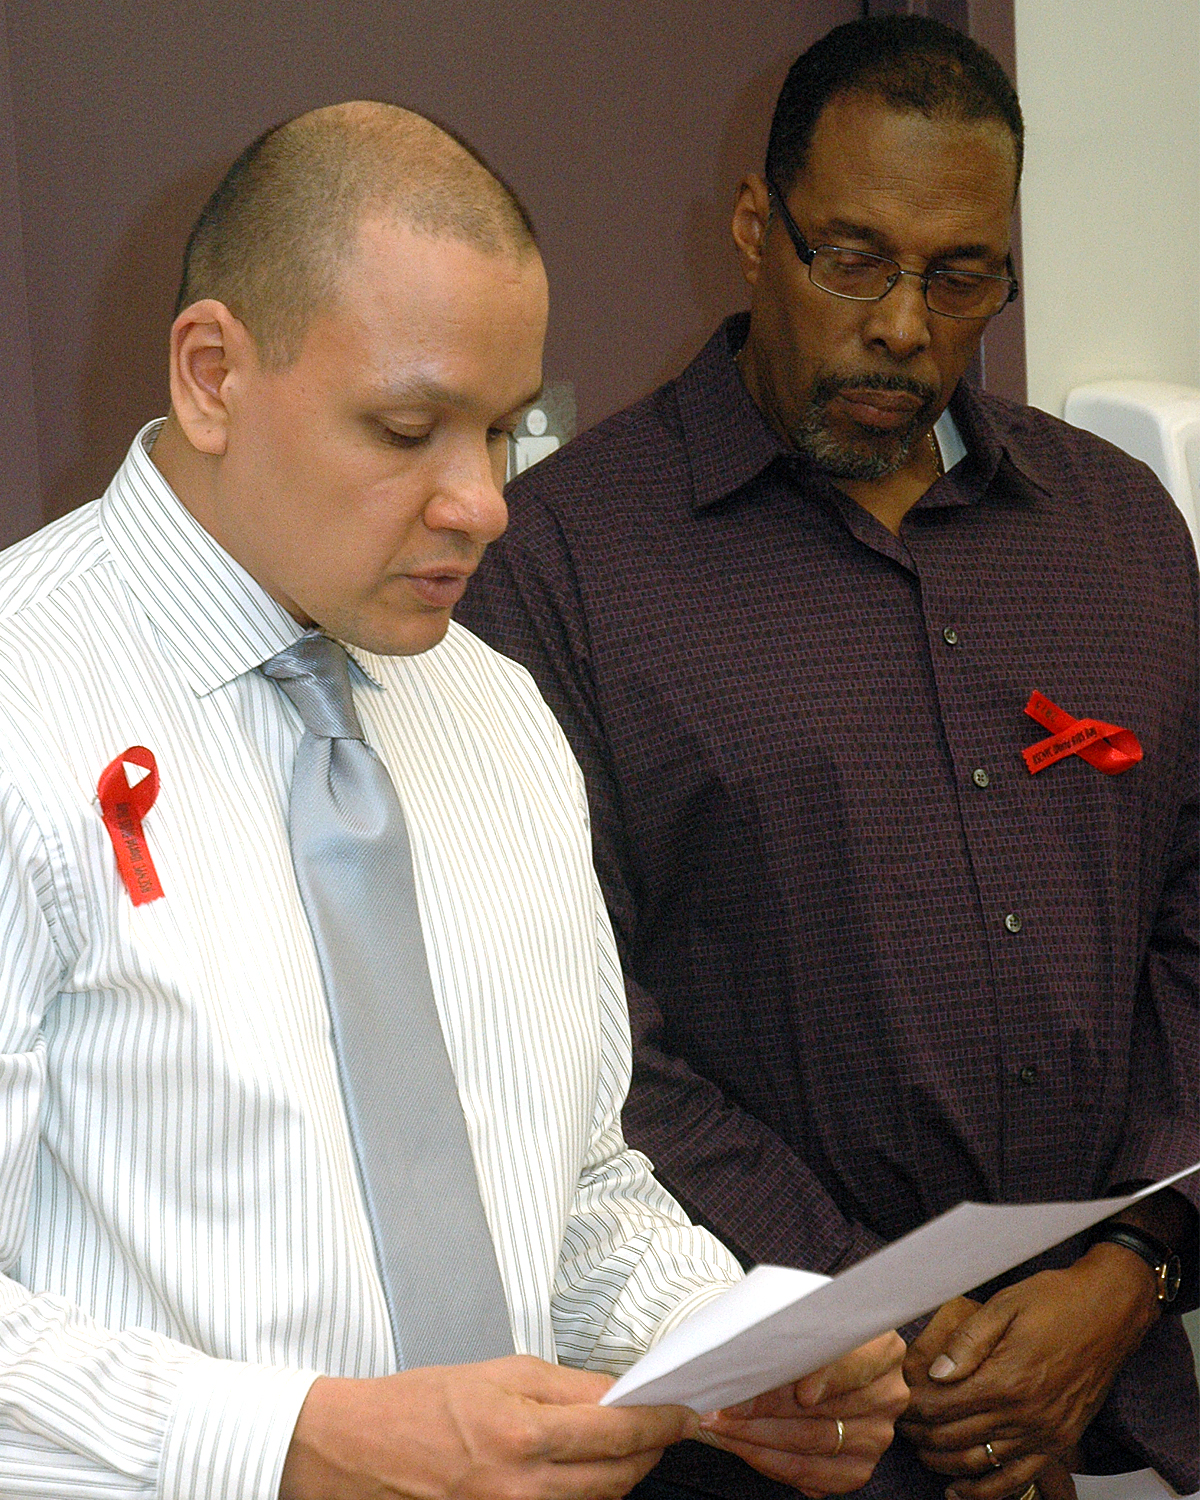 AIDS In Our Community: Reading Of Names - Ioannis Dunn Srimuang Boon and Derrick Horton